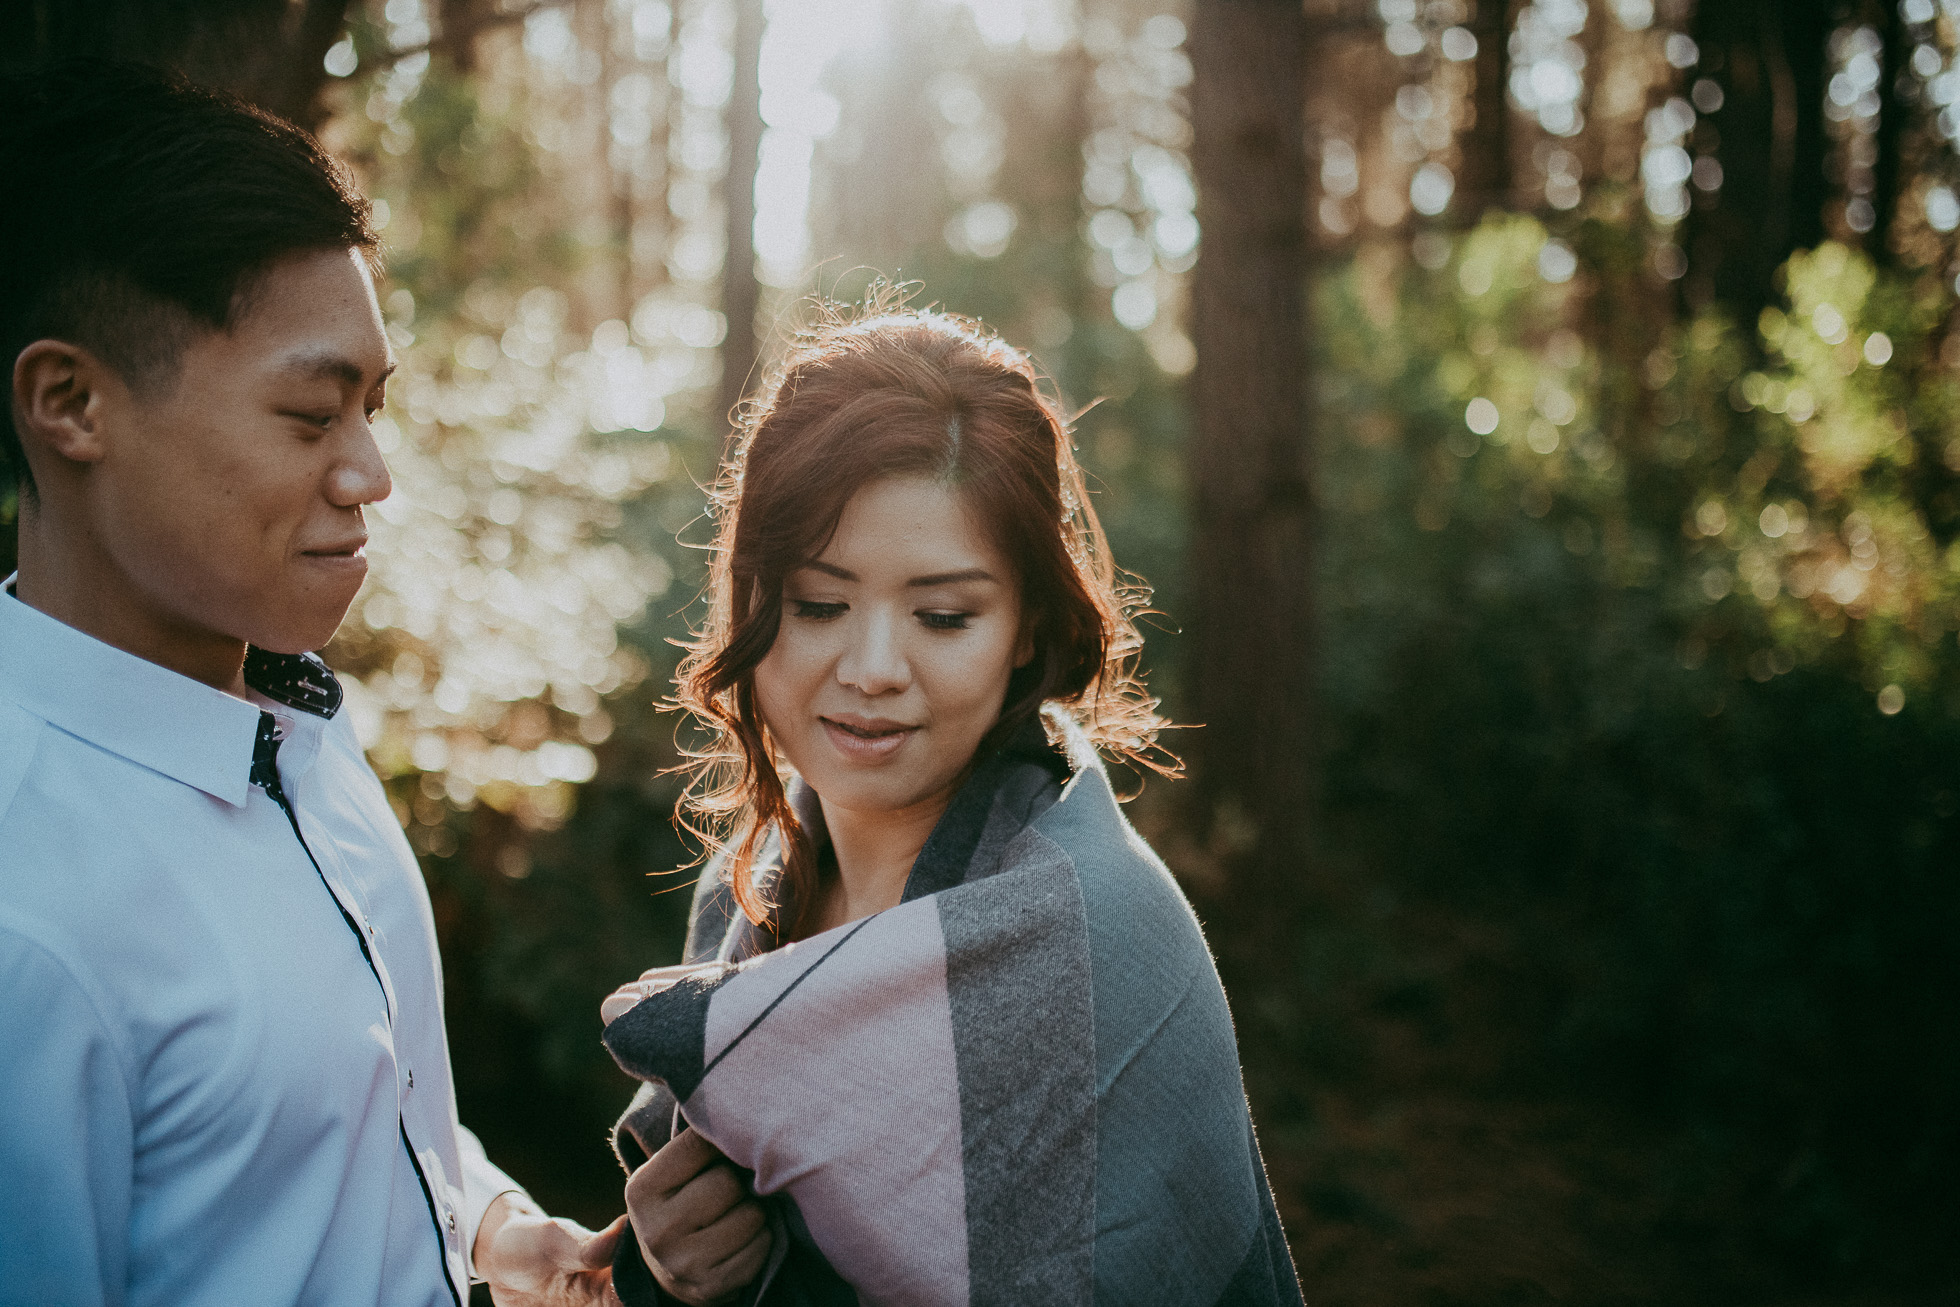 Pre-wedding West Auckland + Domain Auckland photo shoot {wedding | engagement photography}